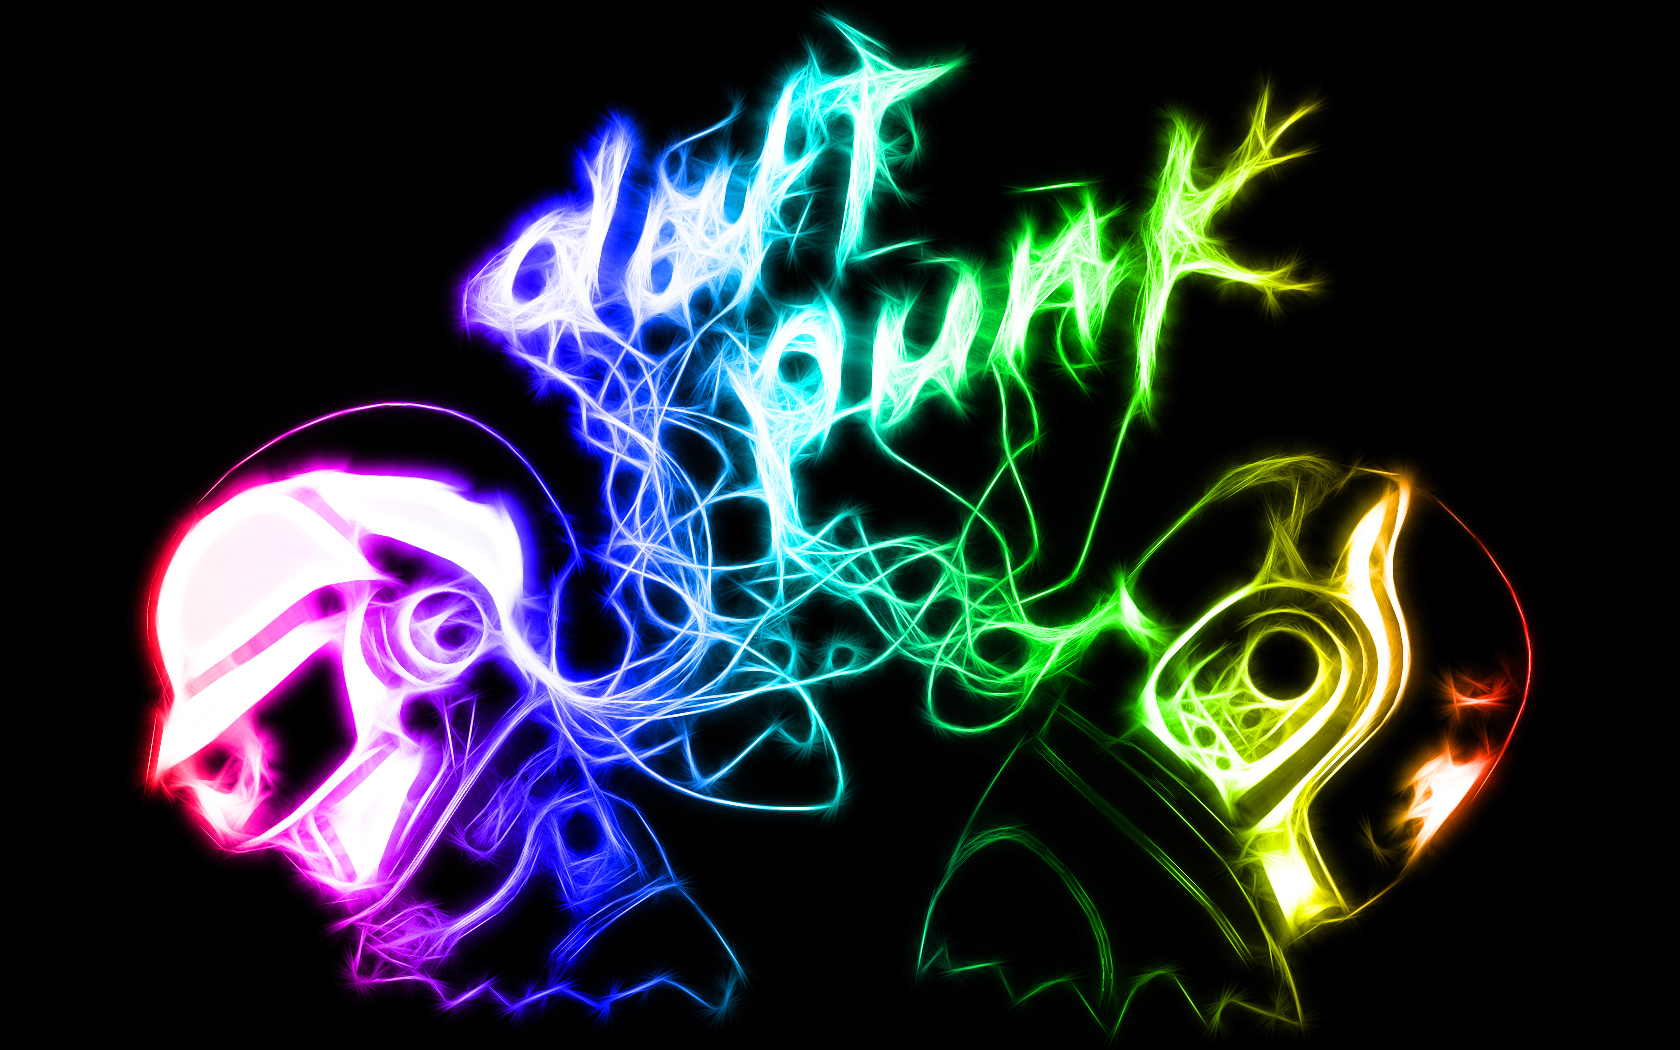 Daft Punk Hd Wallpaper - WallpaperSafari